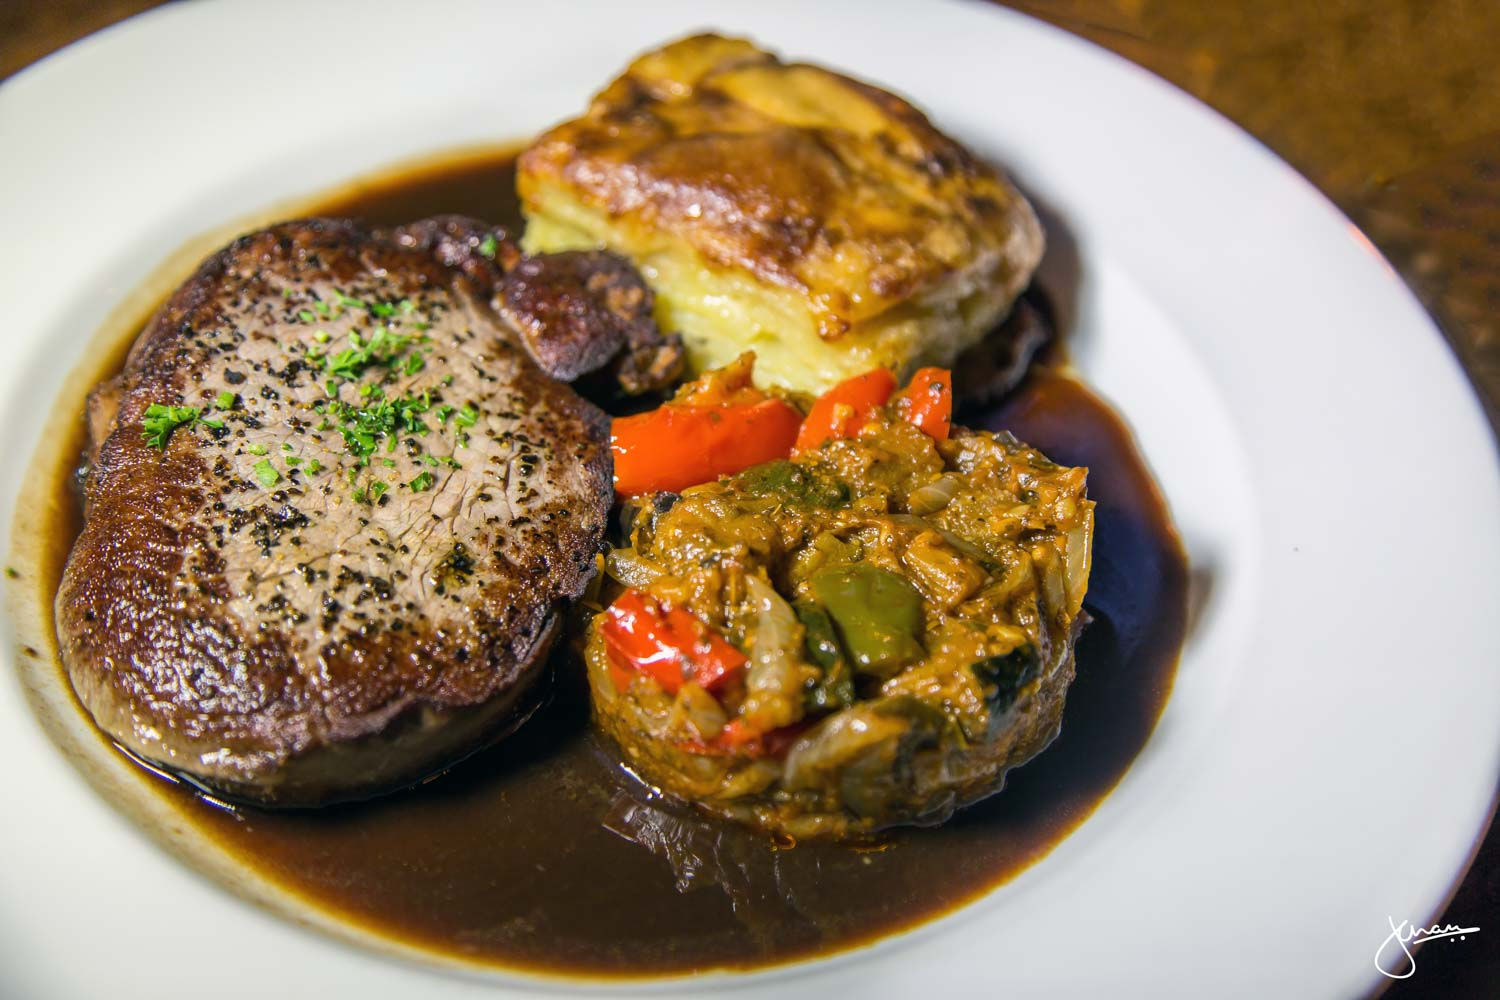 Alberta beef tenderloin with ratatouille, scalloped potatoes & a red wine reduction